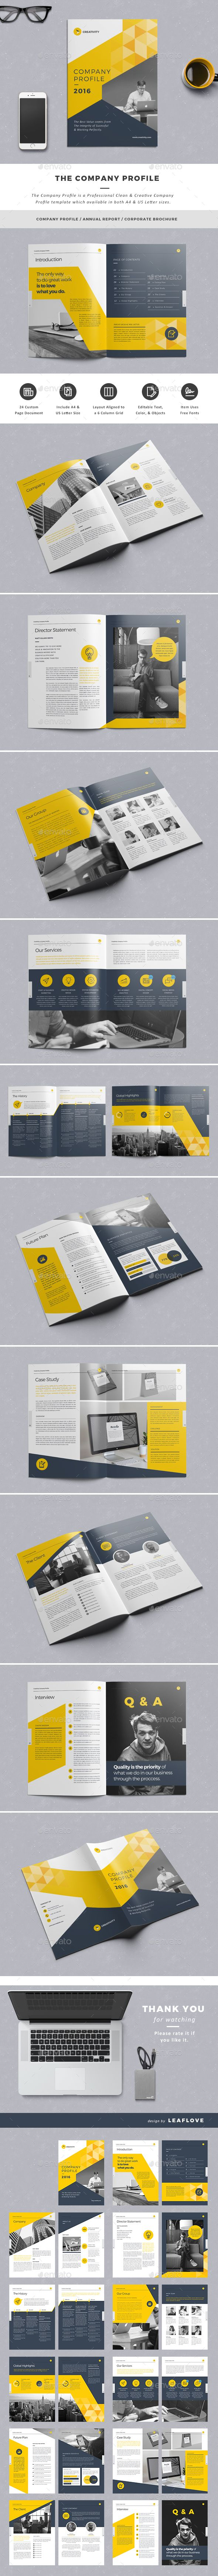 The Company Profile - Corporate Brochures                                                                                                                                                                                 More